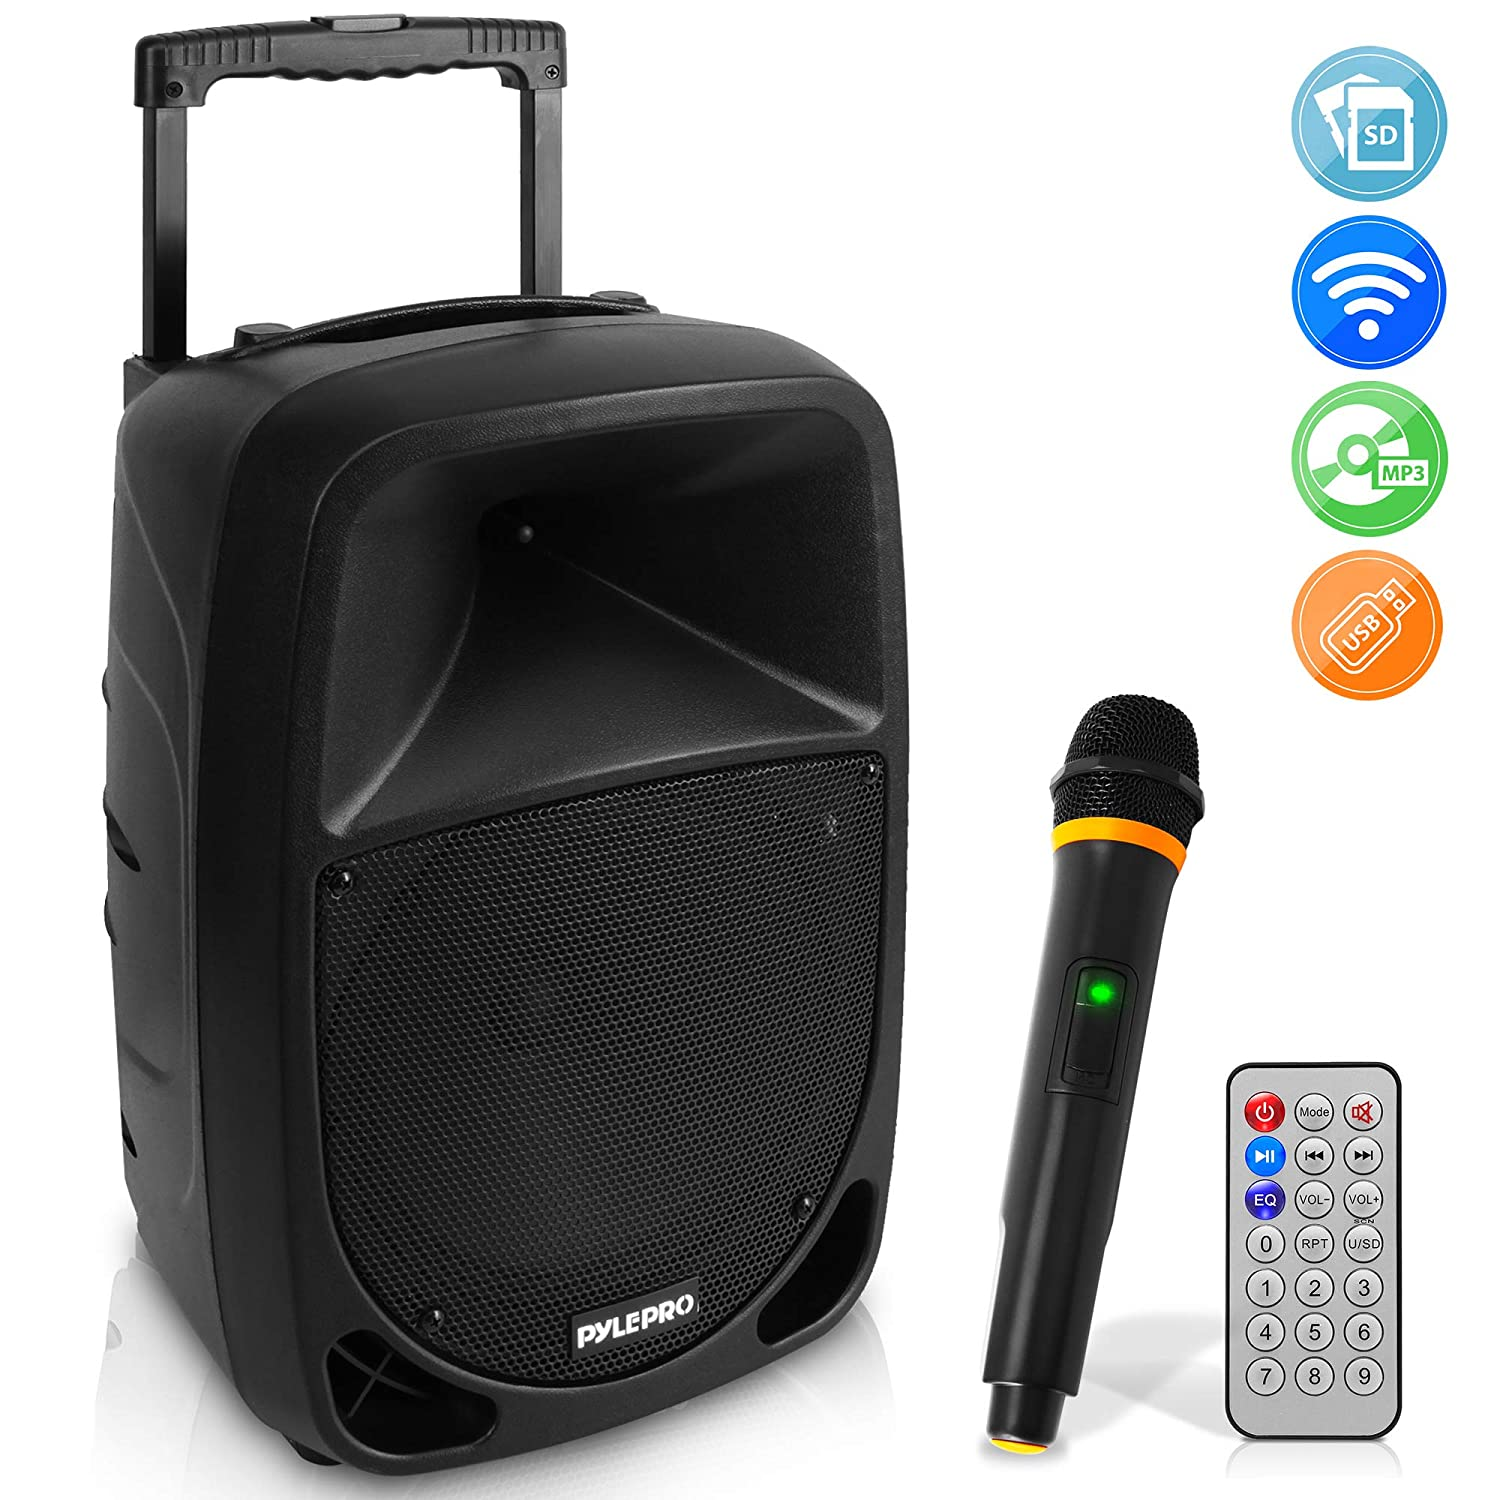 1000W Portable Bluetooth PA Speaker - 10'' Karaoke Speaker System with UHF Wireless Microphone, Remote Control & Built-In Rechargeable Battery, MP3/USB/SD, LED Battery Indicator Lights - Pyle PSBT105A 81HRMoYL31L